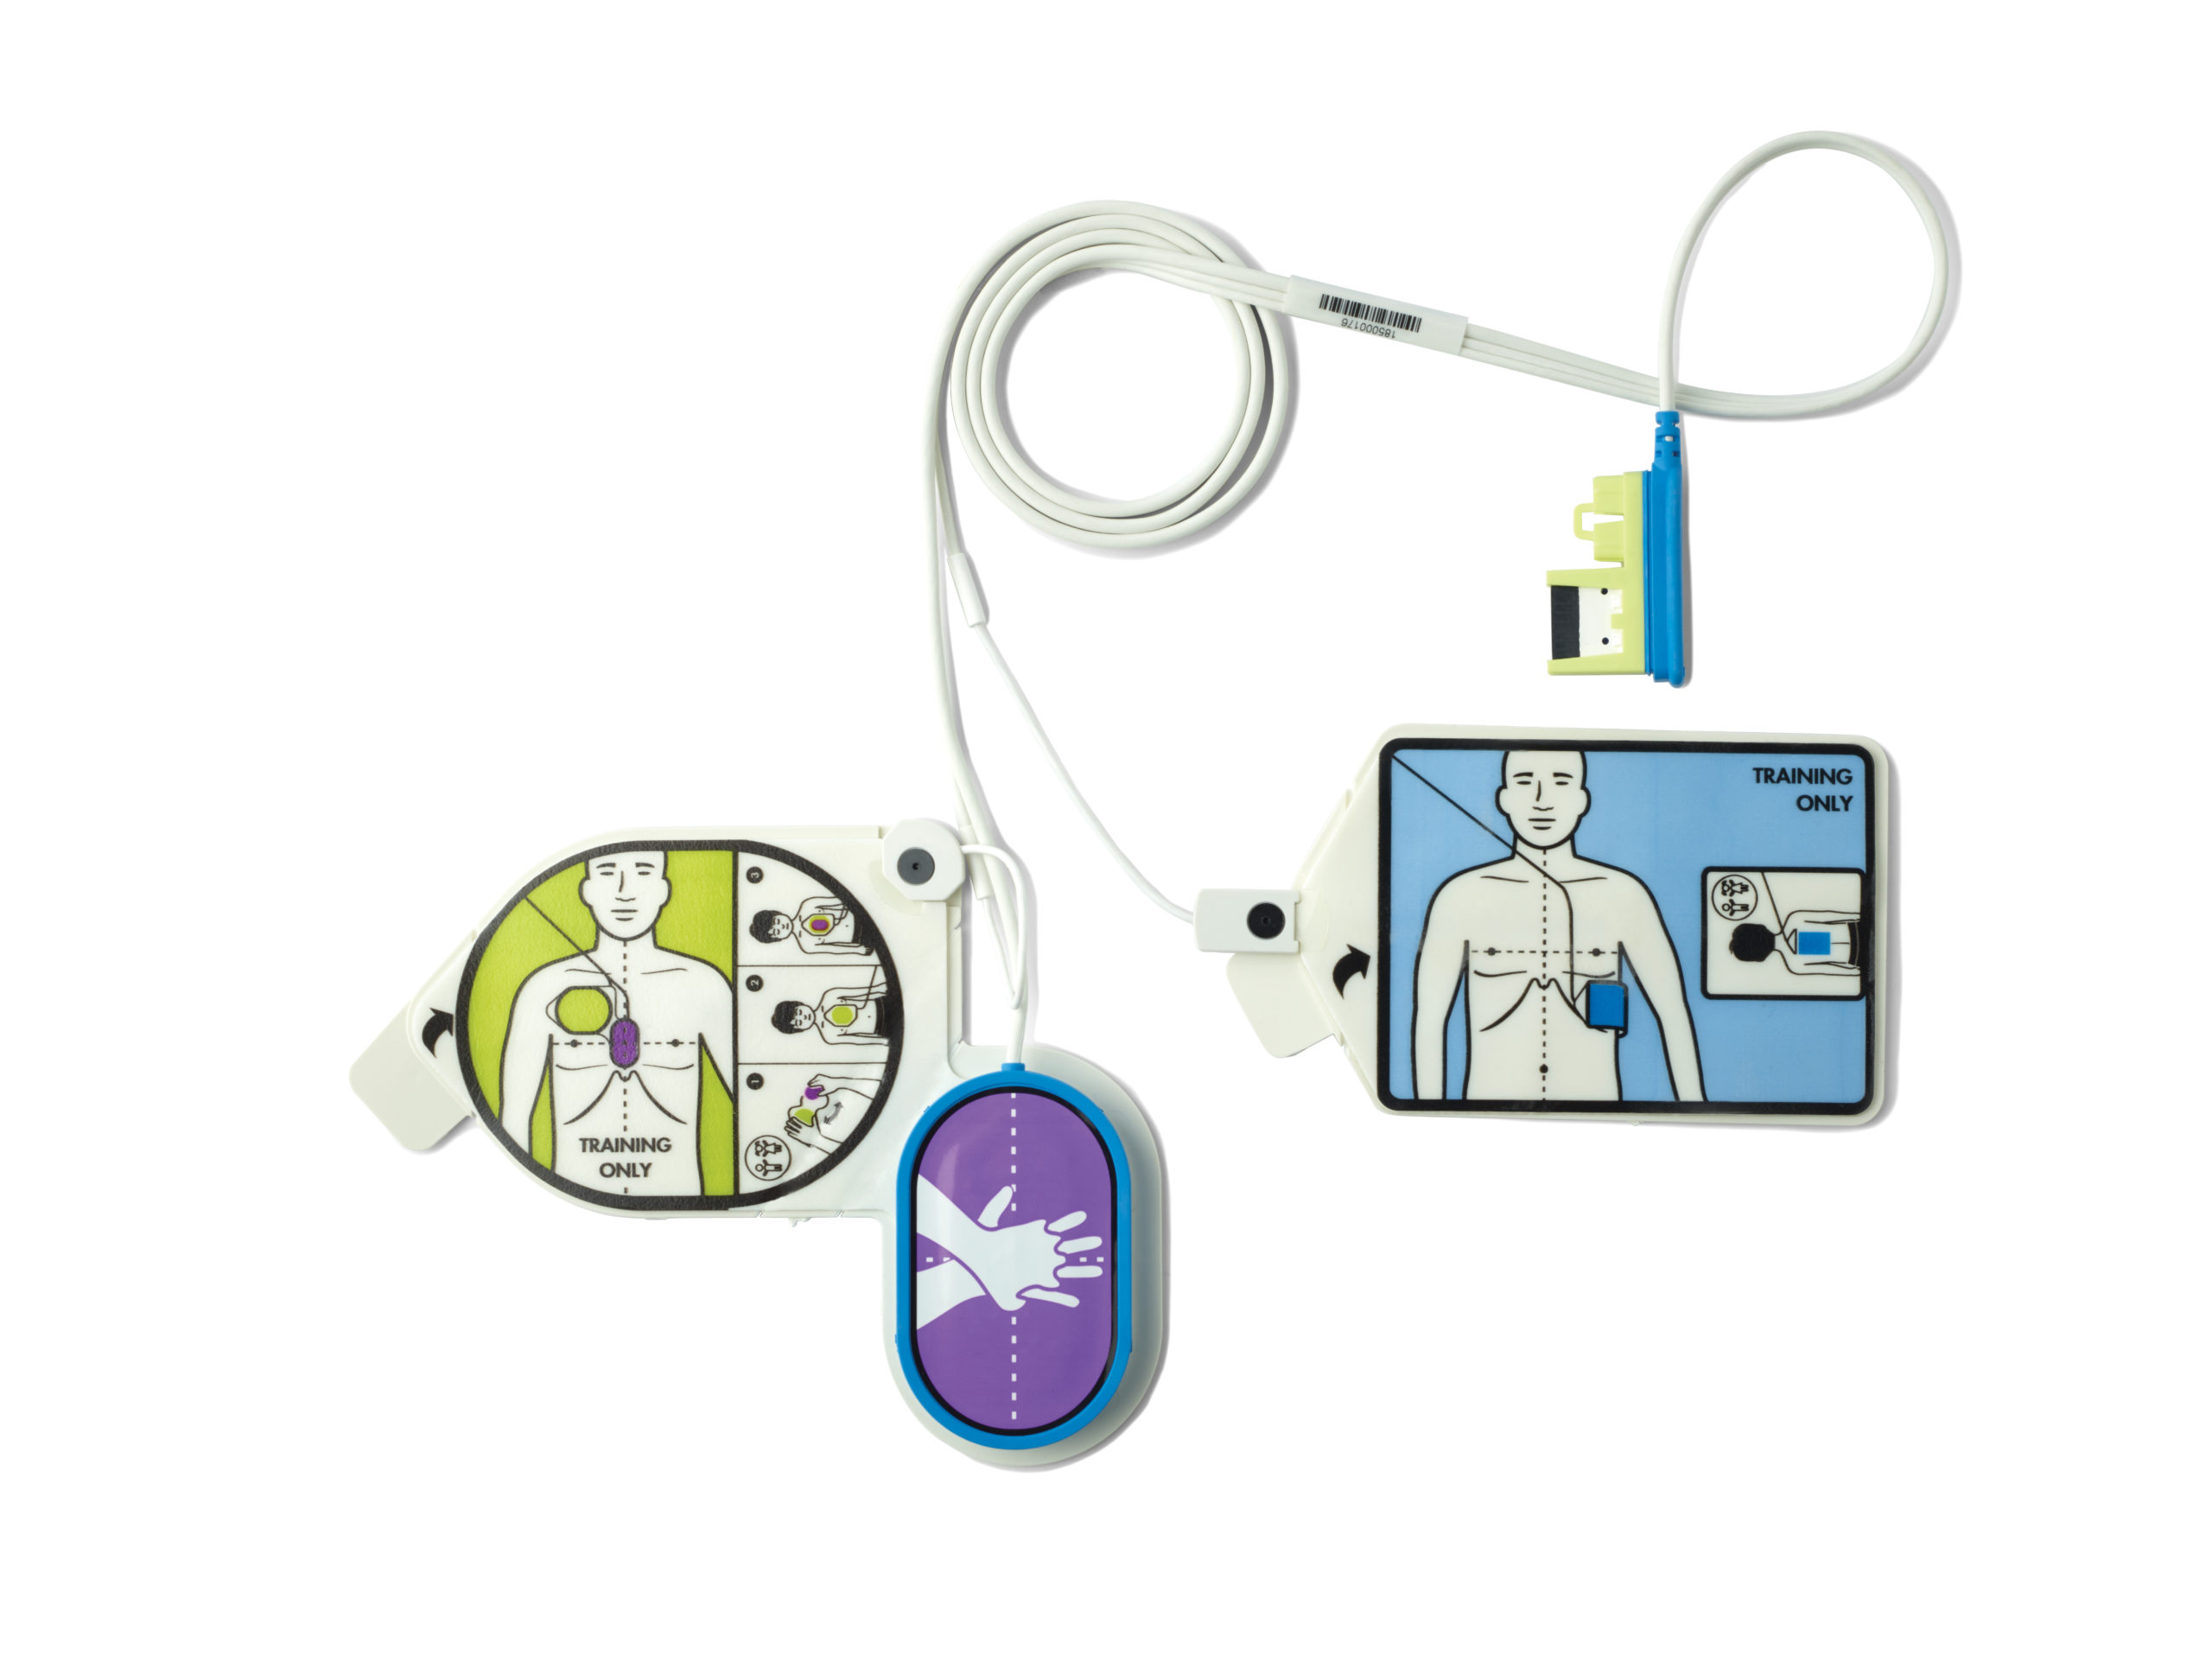 ZOLL AED 3 Trainer Electrodes complete